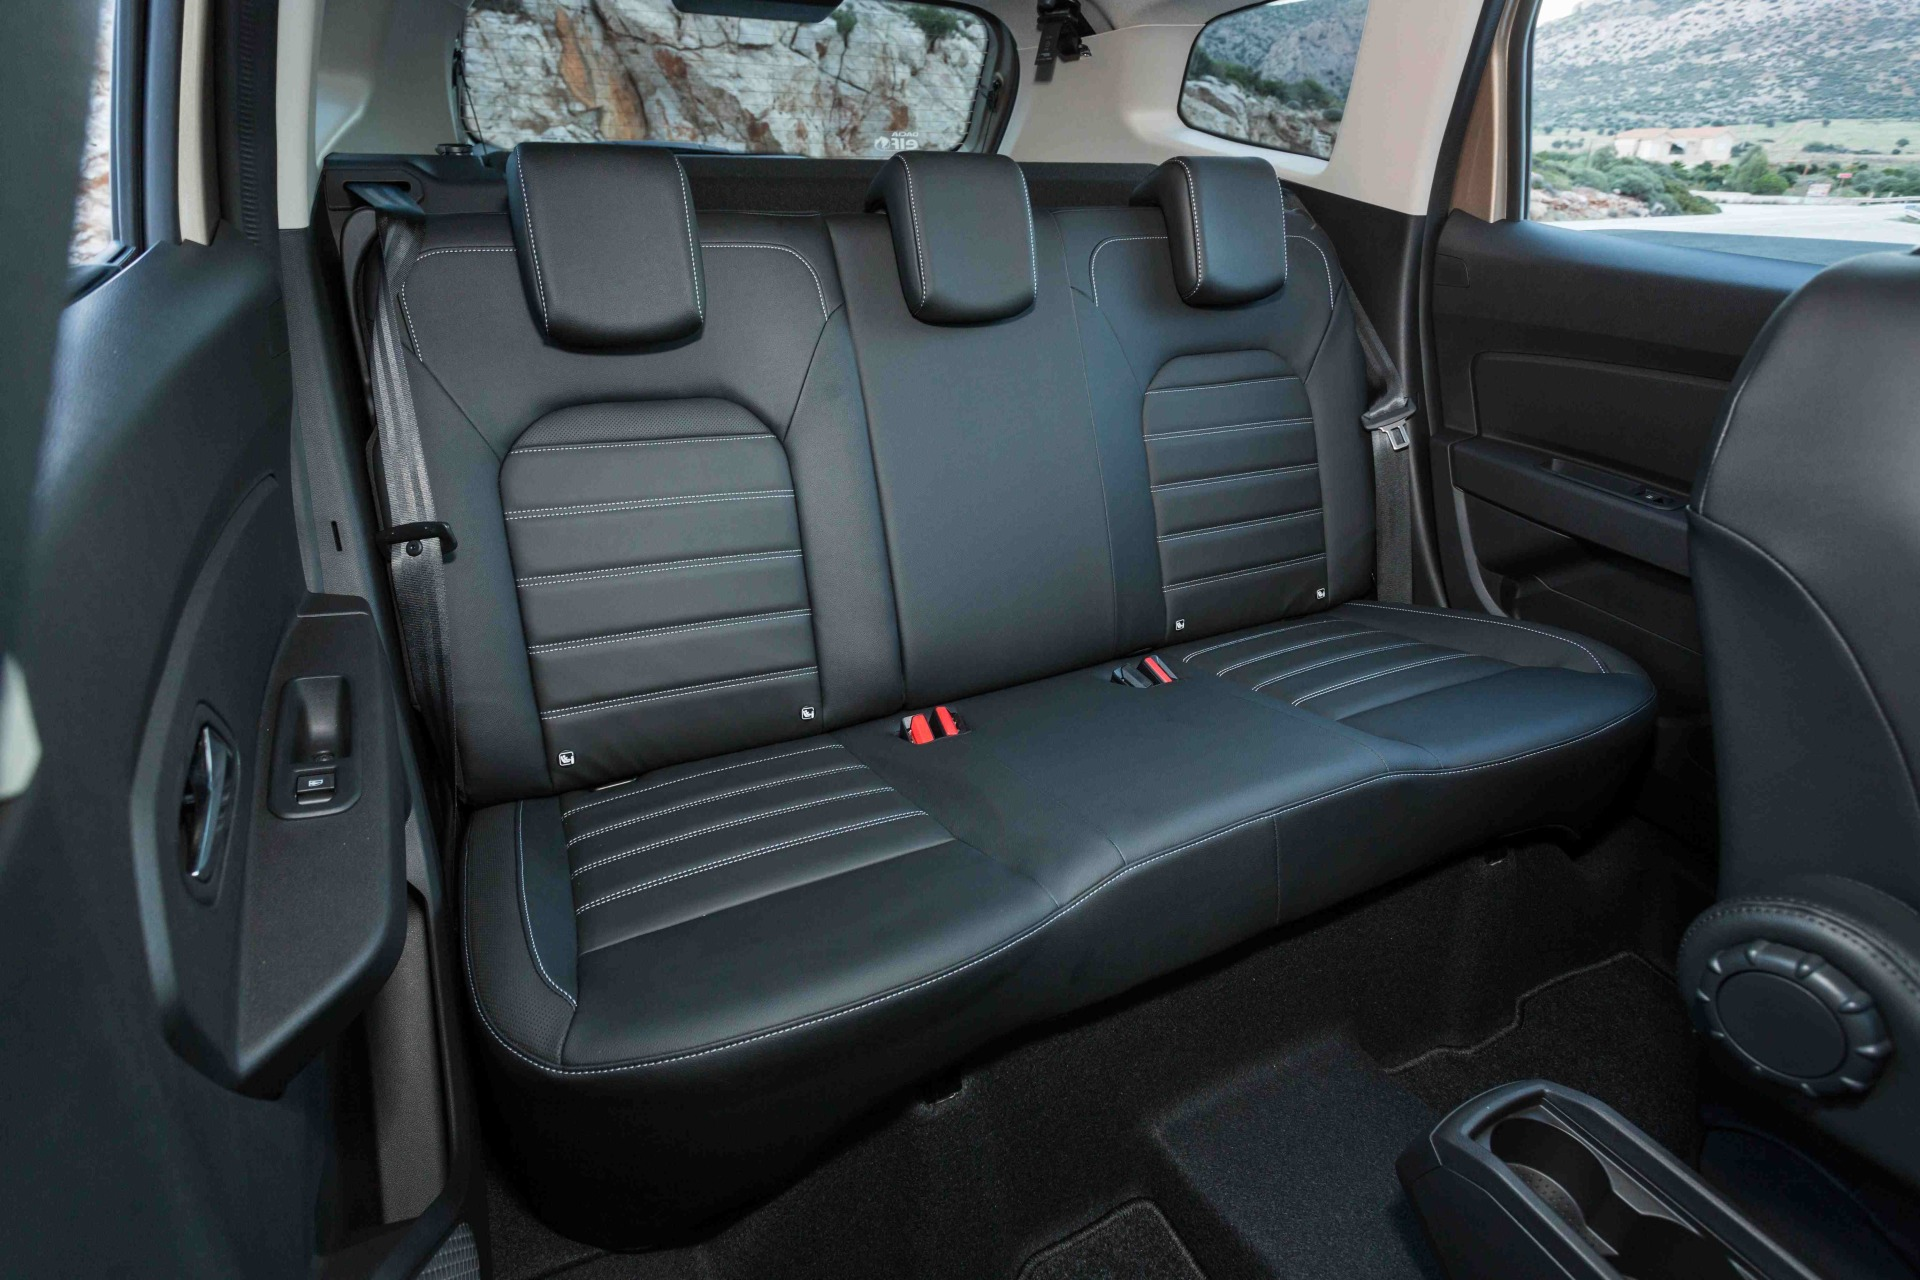 essai dacia duster 2018 notre avis sur le nouveau duster dci 110 photo 38 l 39 argus. Black Bedroom Furniture Sets. Home Design Ideas